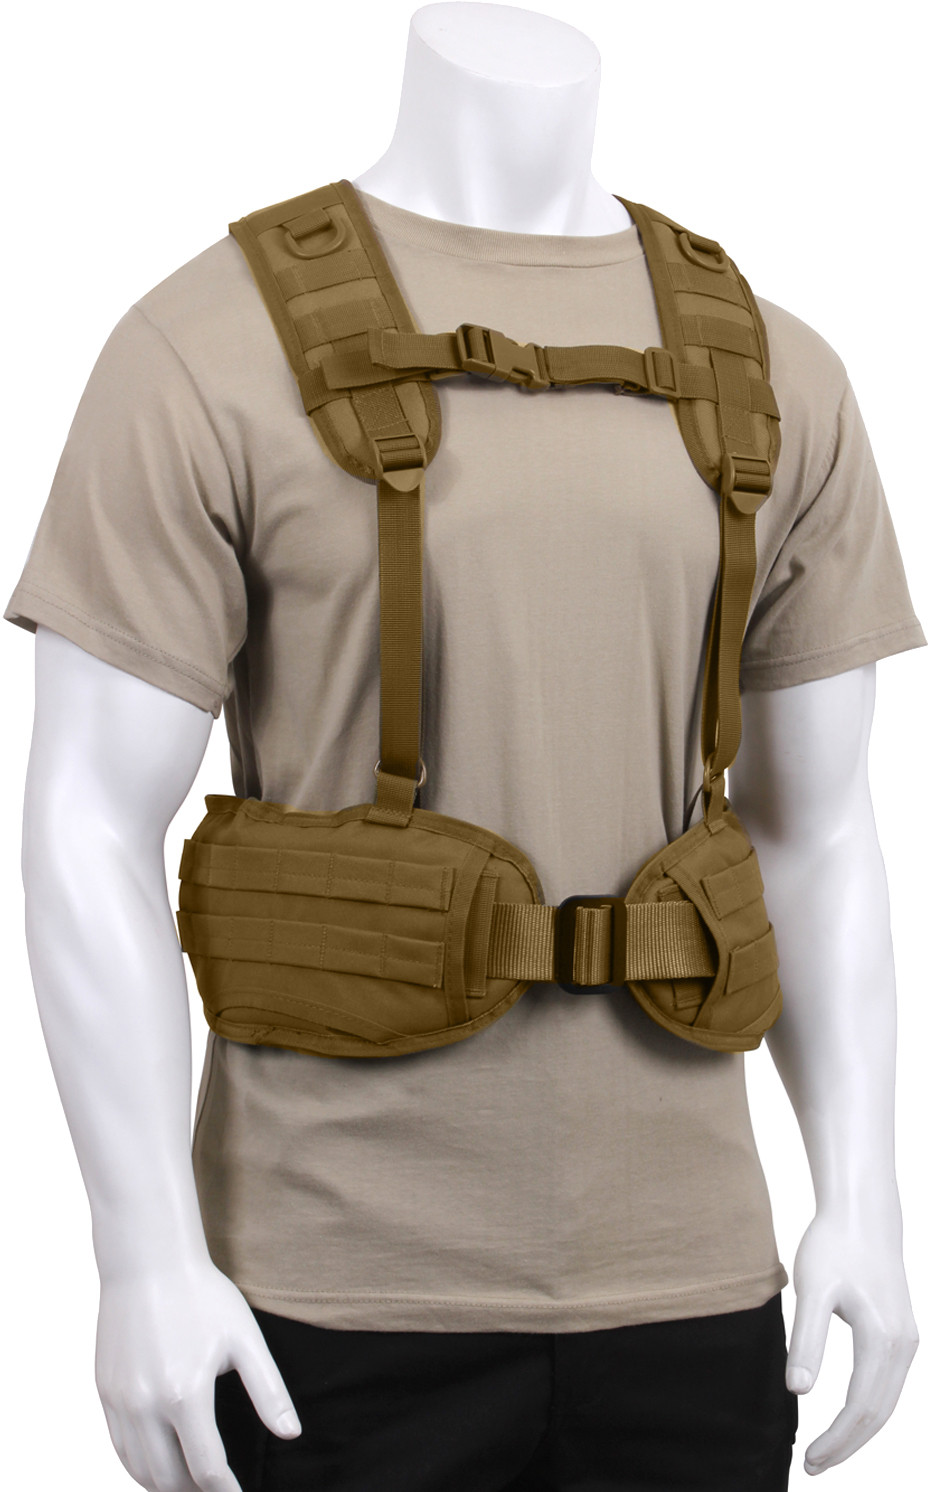 ... Coyote BrownMilitary MOLLE Battle Belt Load Bearing Tactical Police  Harness ... ac280235f84